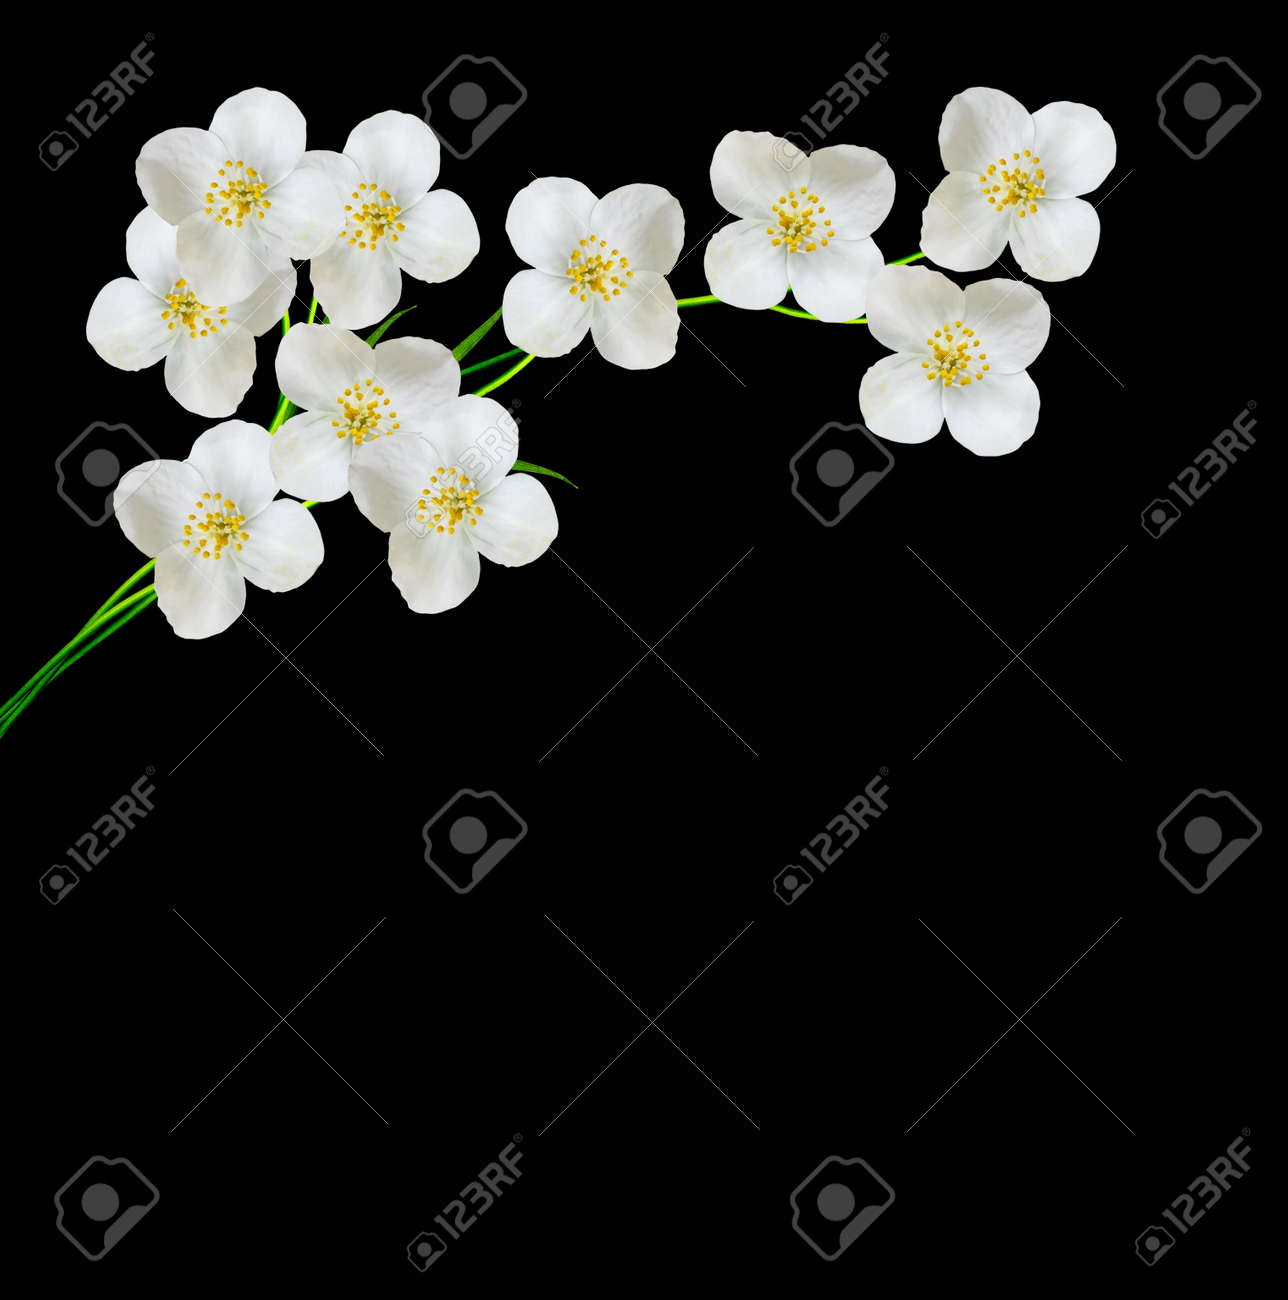 White Jasmine Flower Branch Of Jasmine Flowers Isolated On Stock